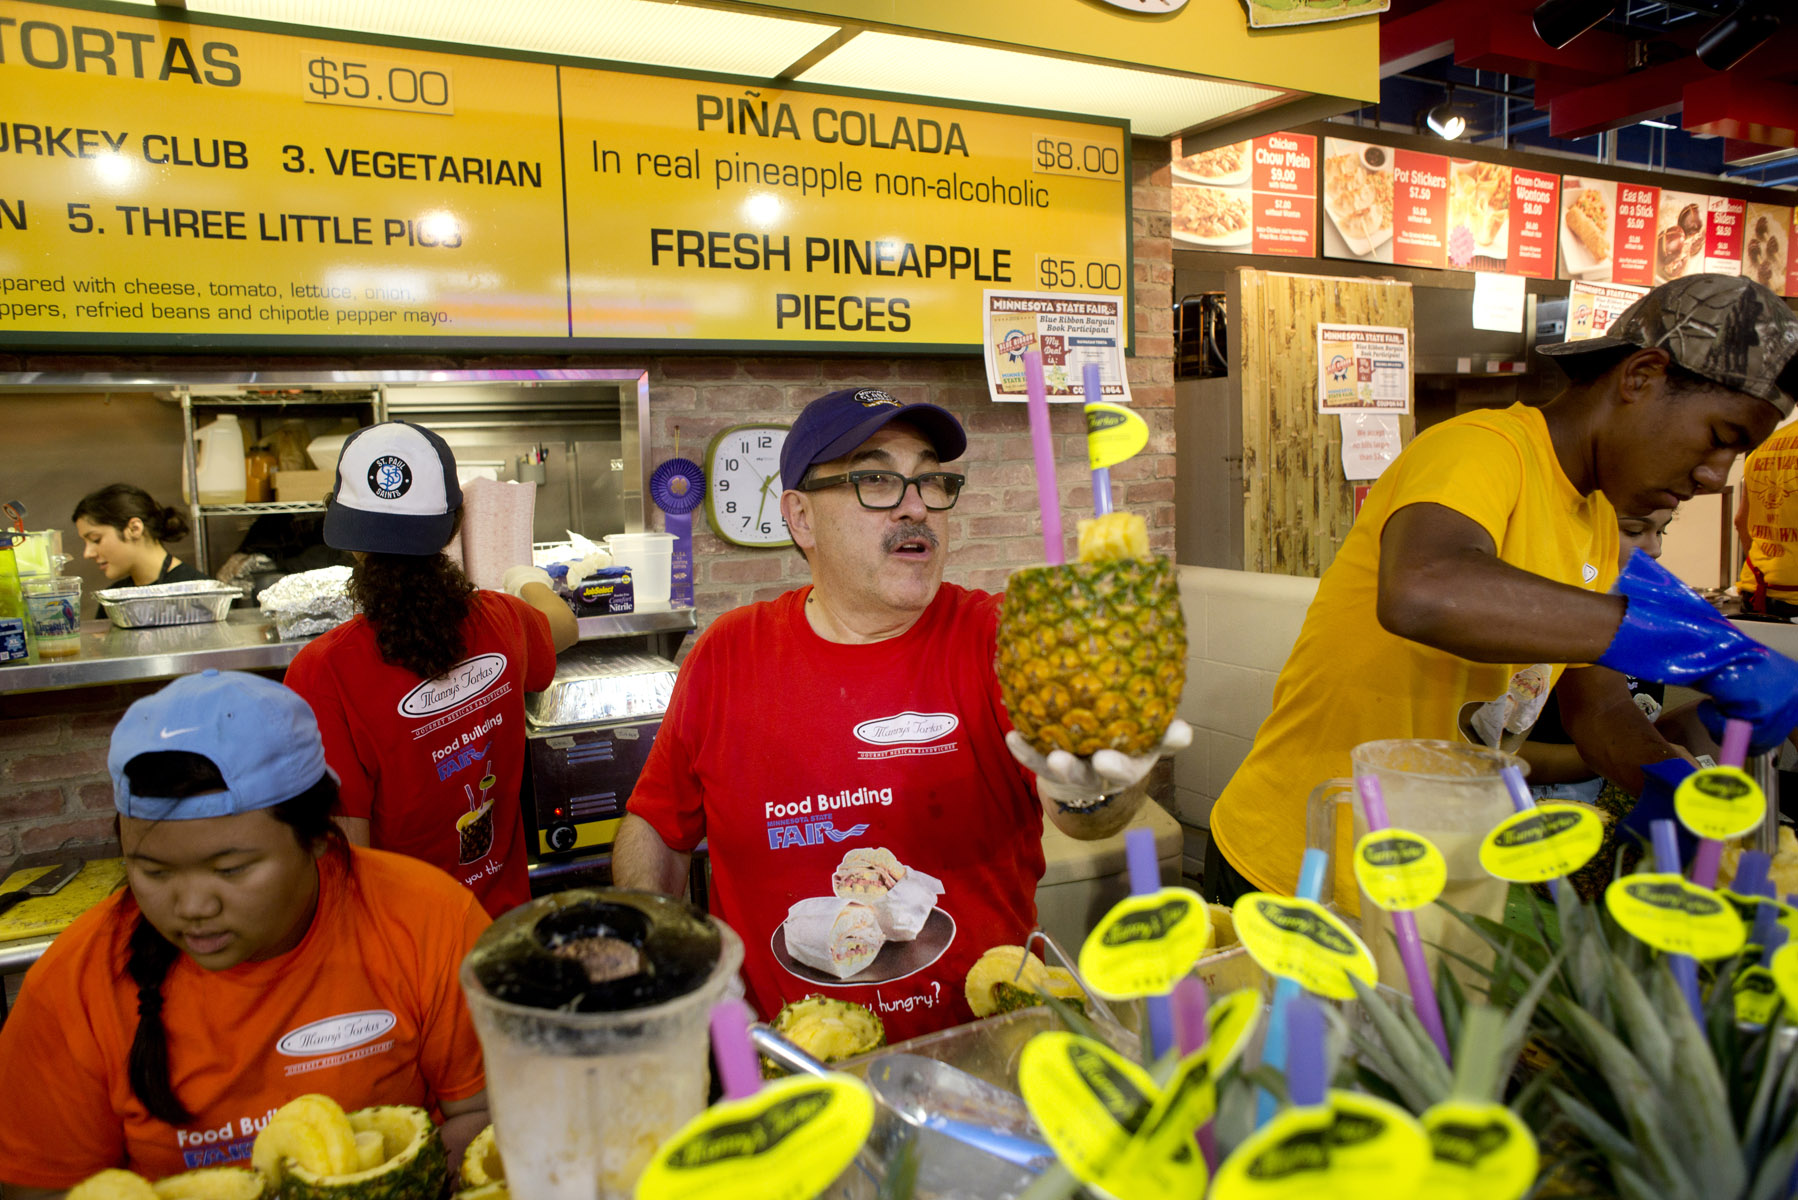 Manny Gonzalez, owner of Manny's Tortas, blends ingredients for his non-alcoholic pina colada during the Minnesota State Fair.